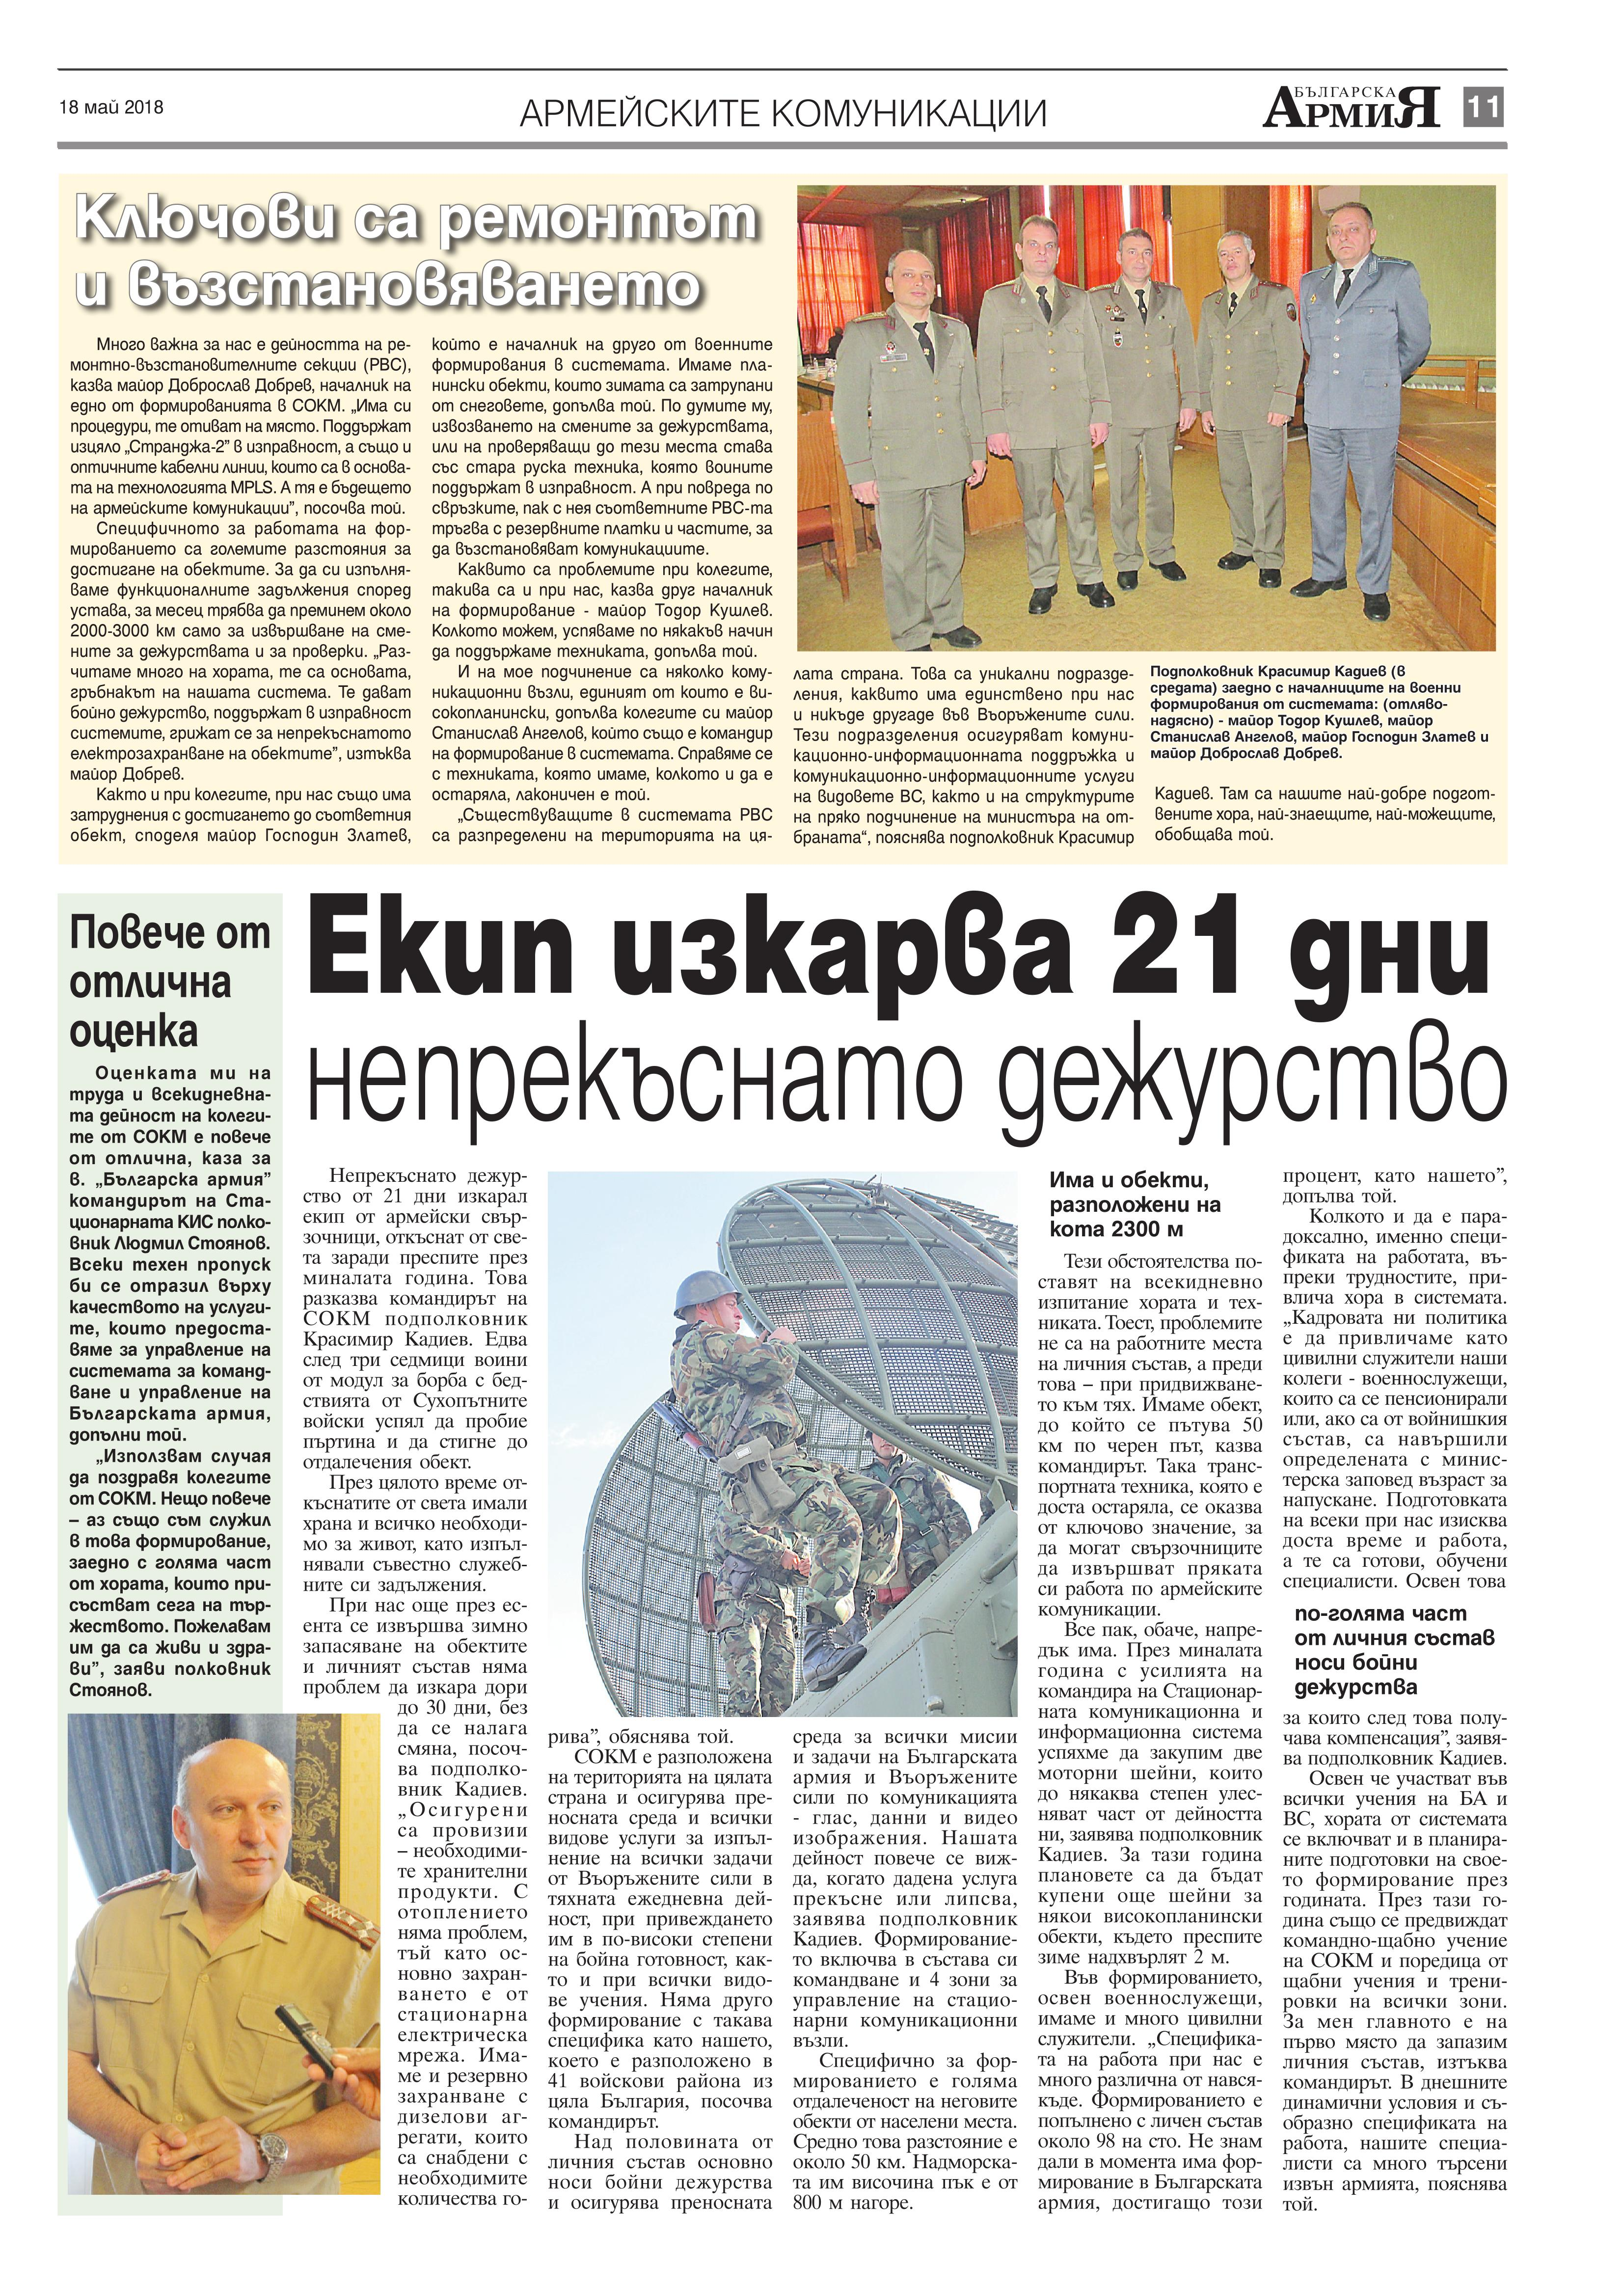 https://armymedia.bg/wp-content/uploads/2015/06/11.page1_-51.jpg